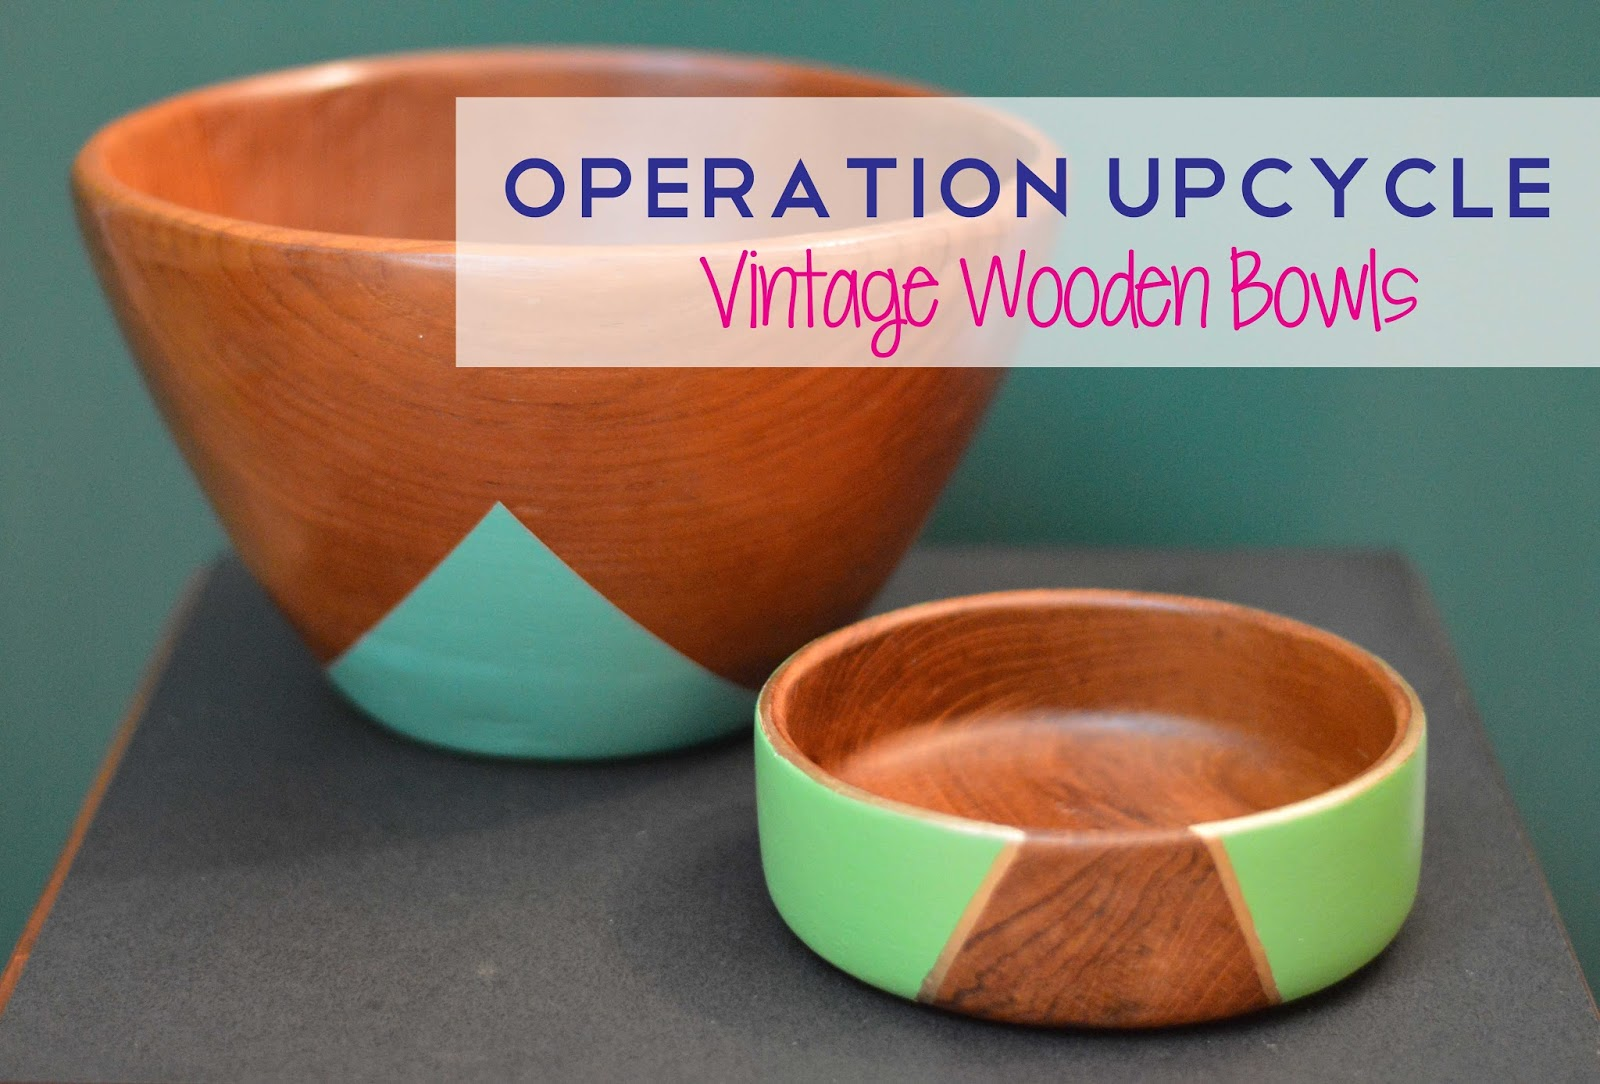 upcycled vintage wooden bowls